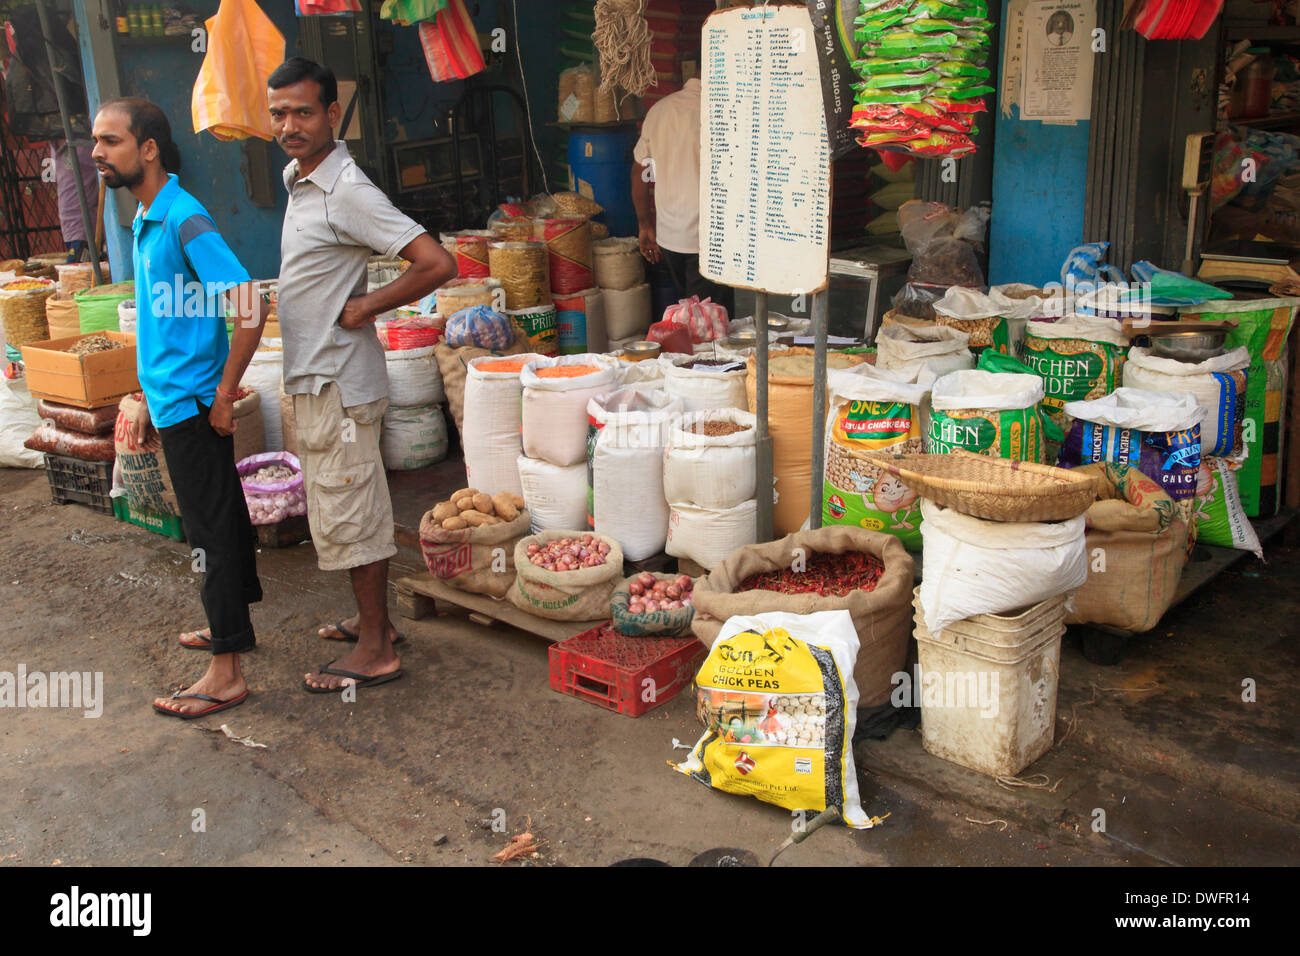 Sri lanka colombo pettah market food people street for Pettah market colombo